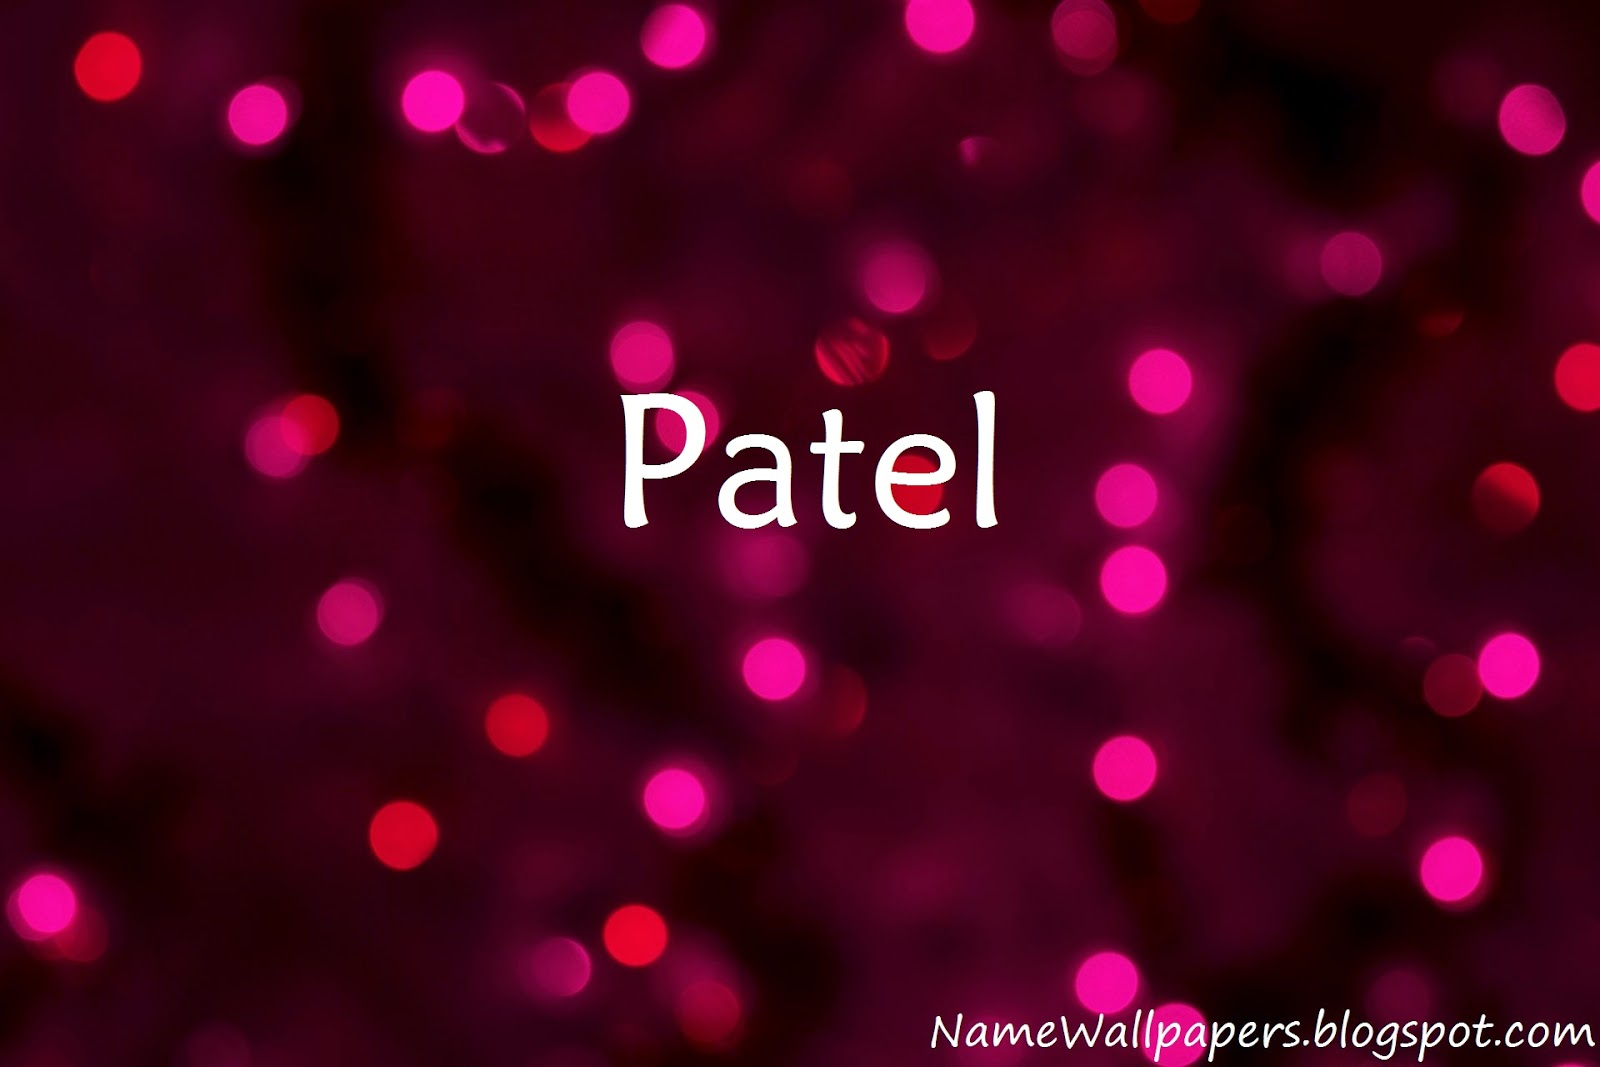 Animated Christmas Wallpaper Windows 7 Free Download Download Patel Name Wallpaper Gallery